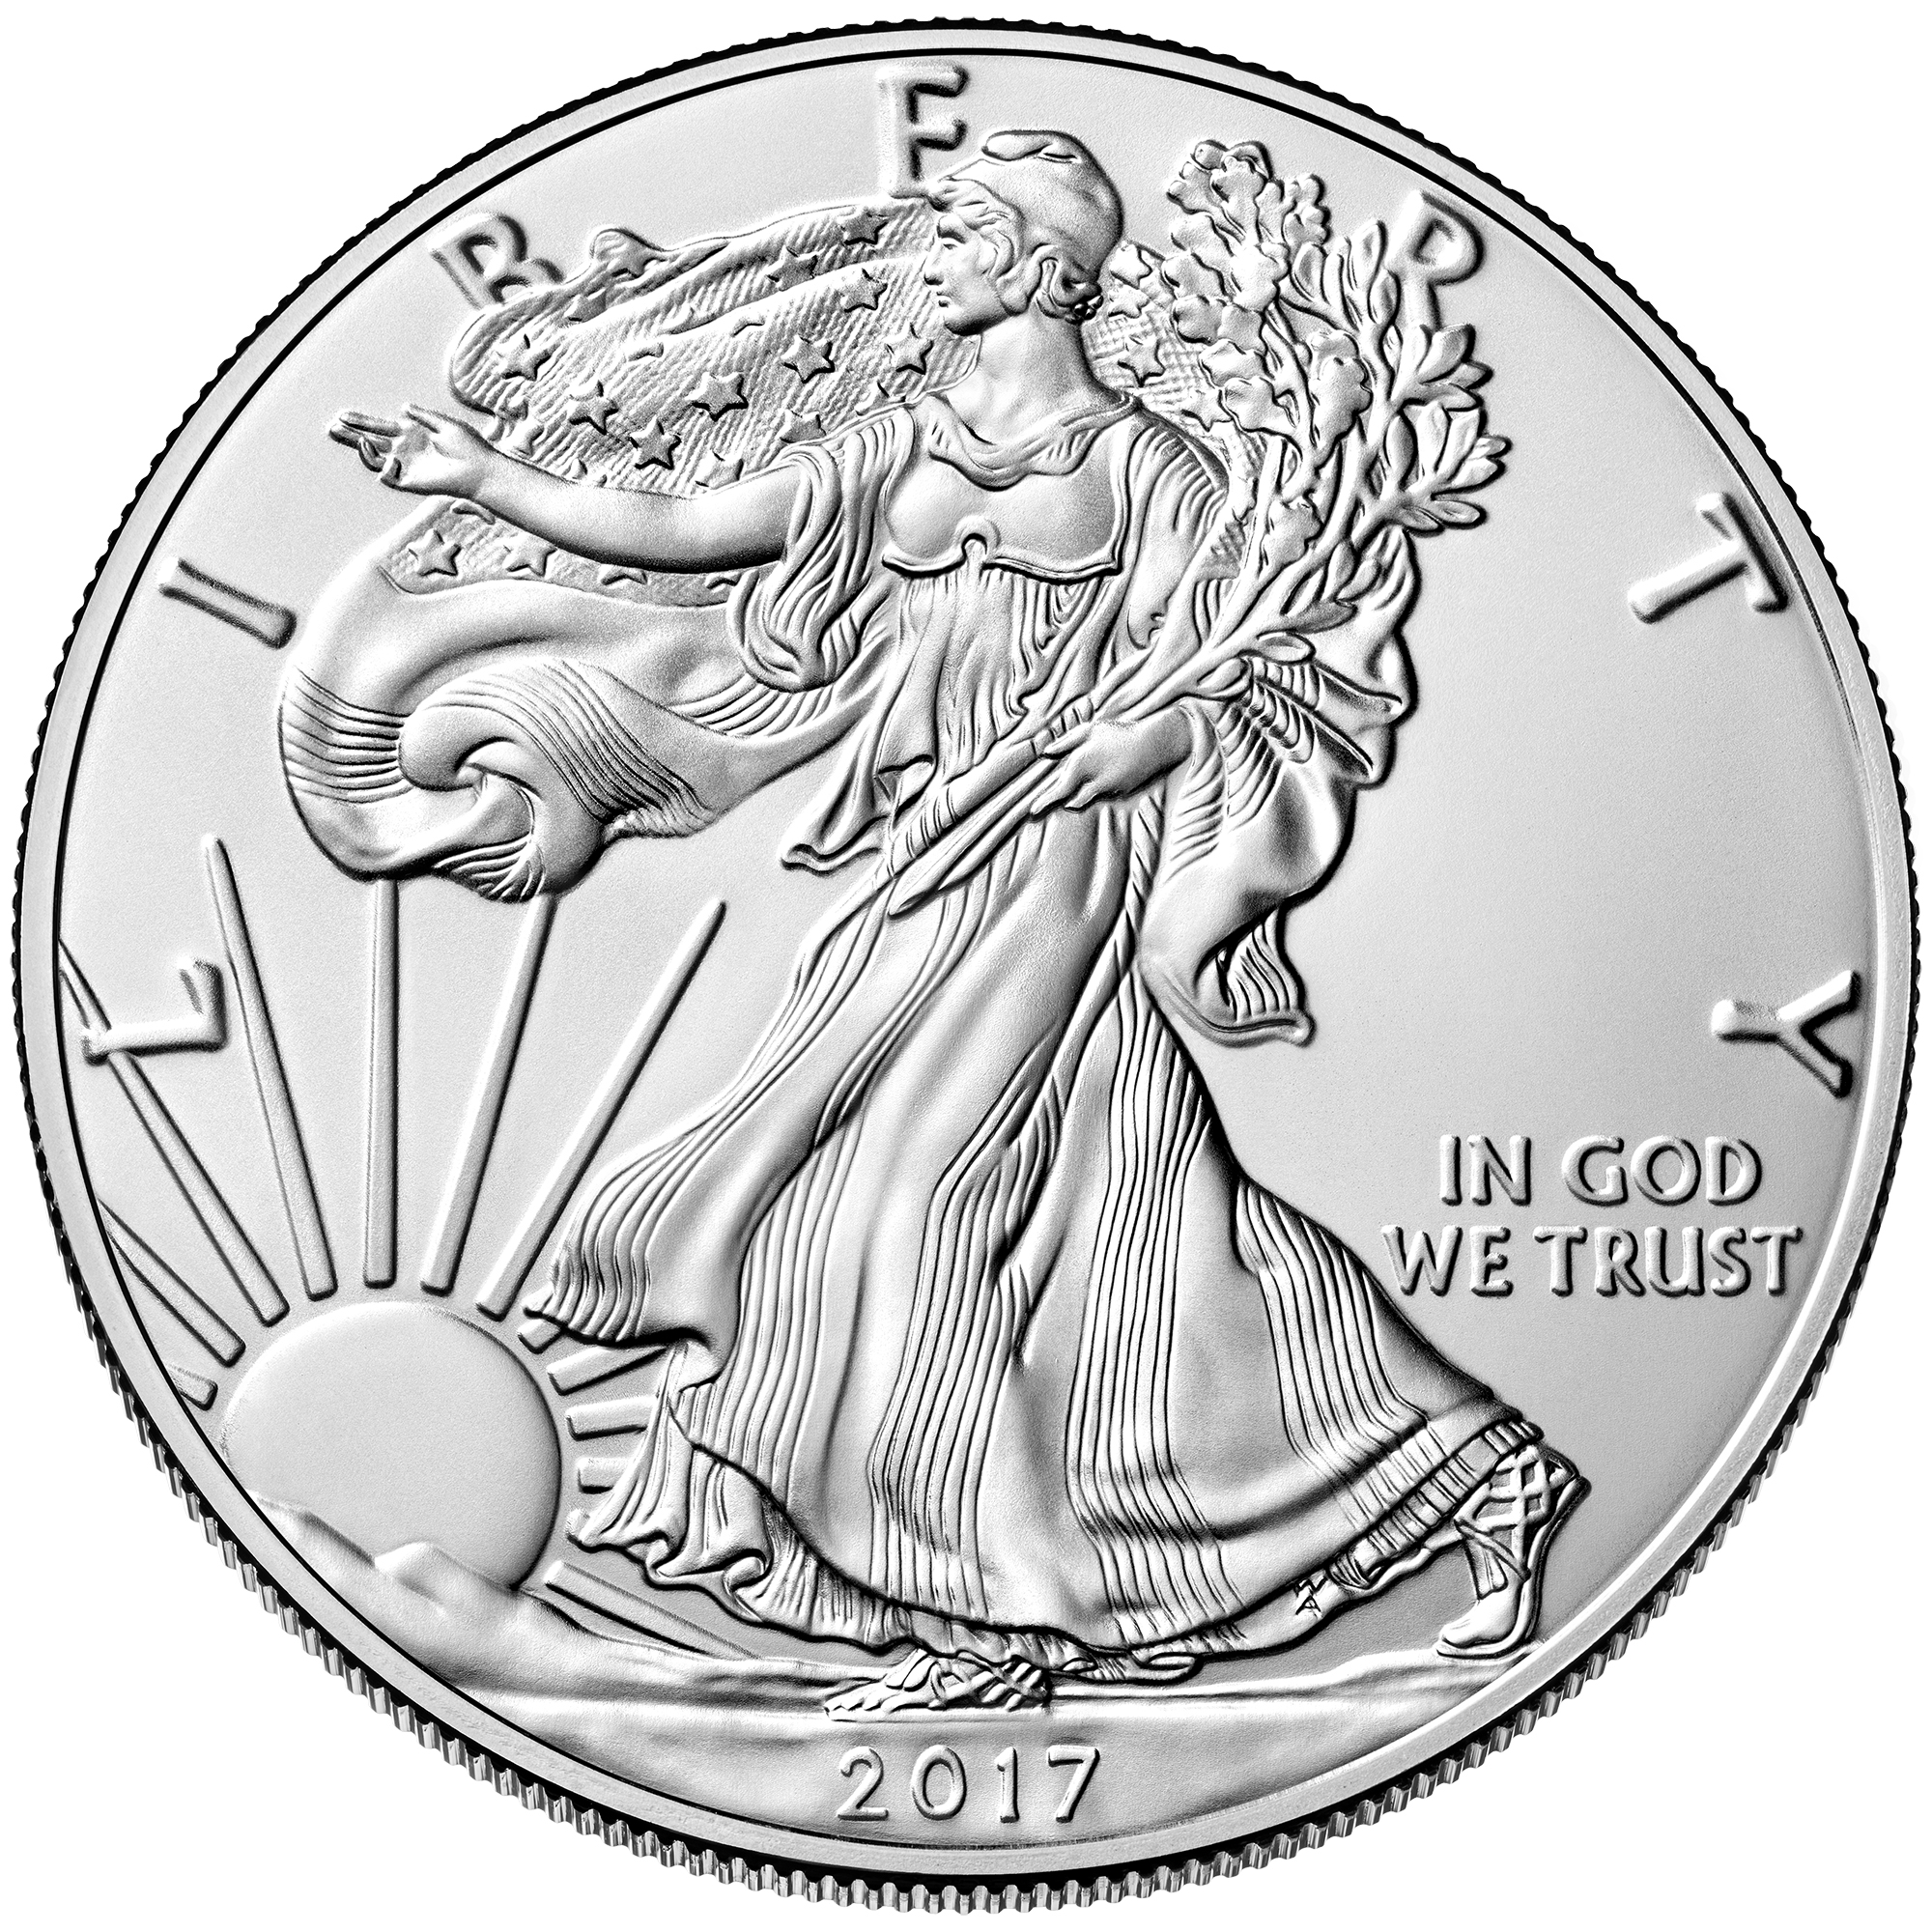 2017 American Eagle Silver One Ounce Uncirculated Coin Obverse